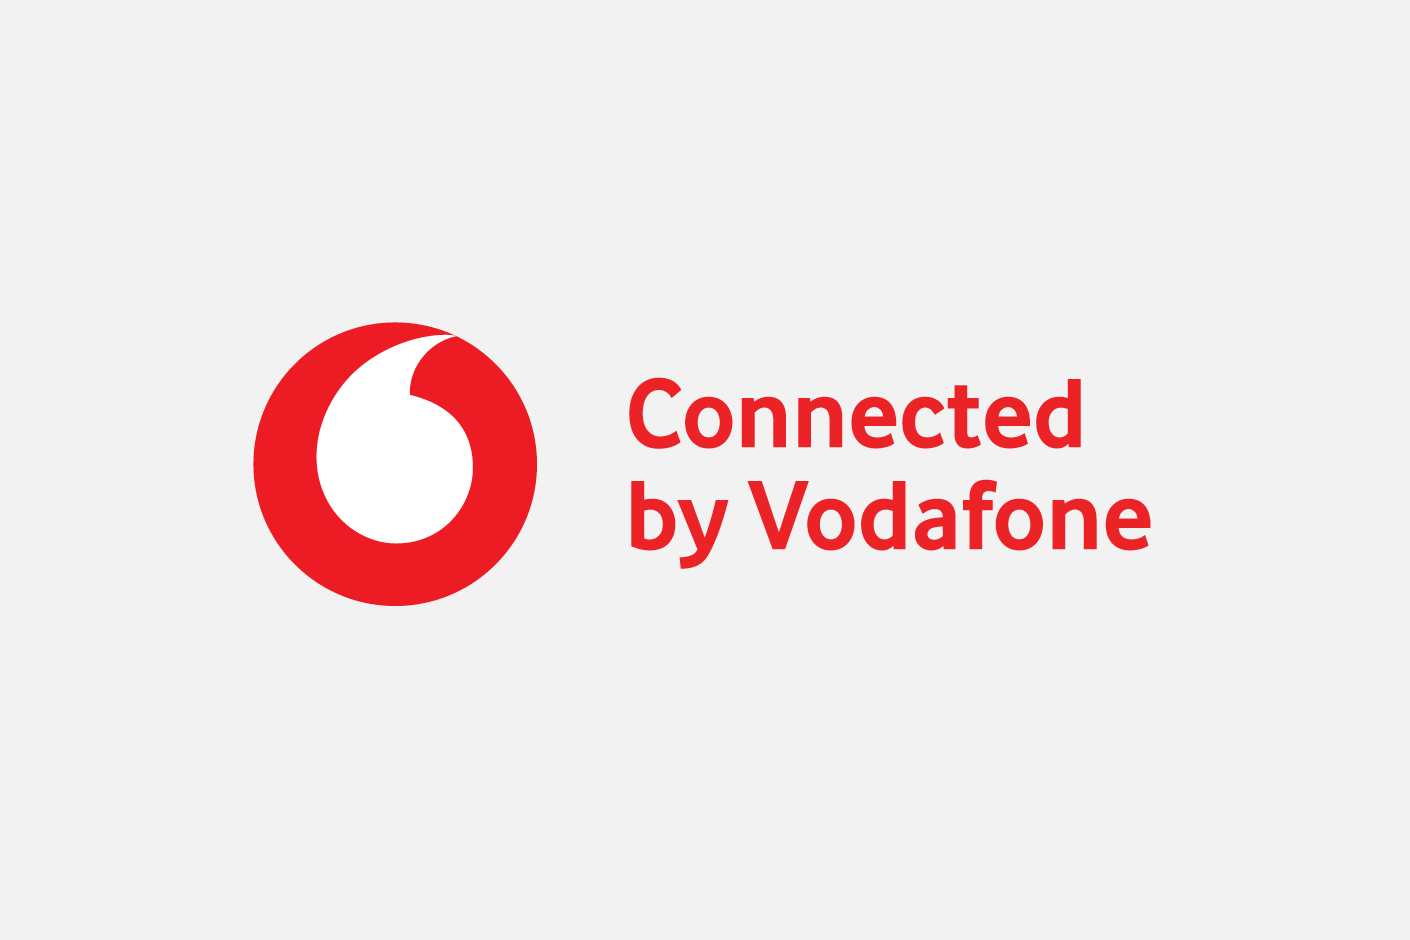 Connected by Vodafone